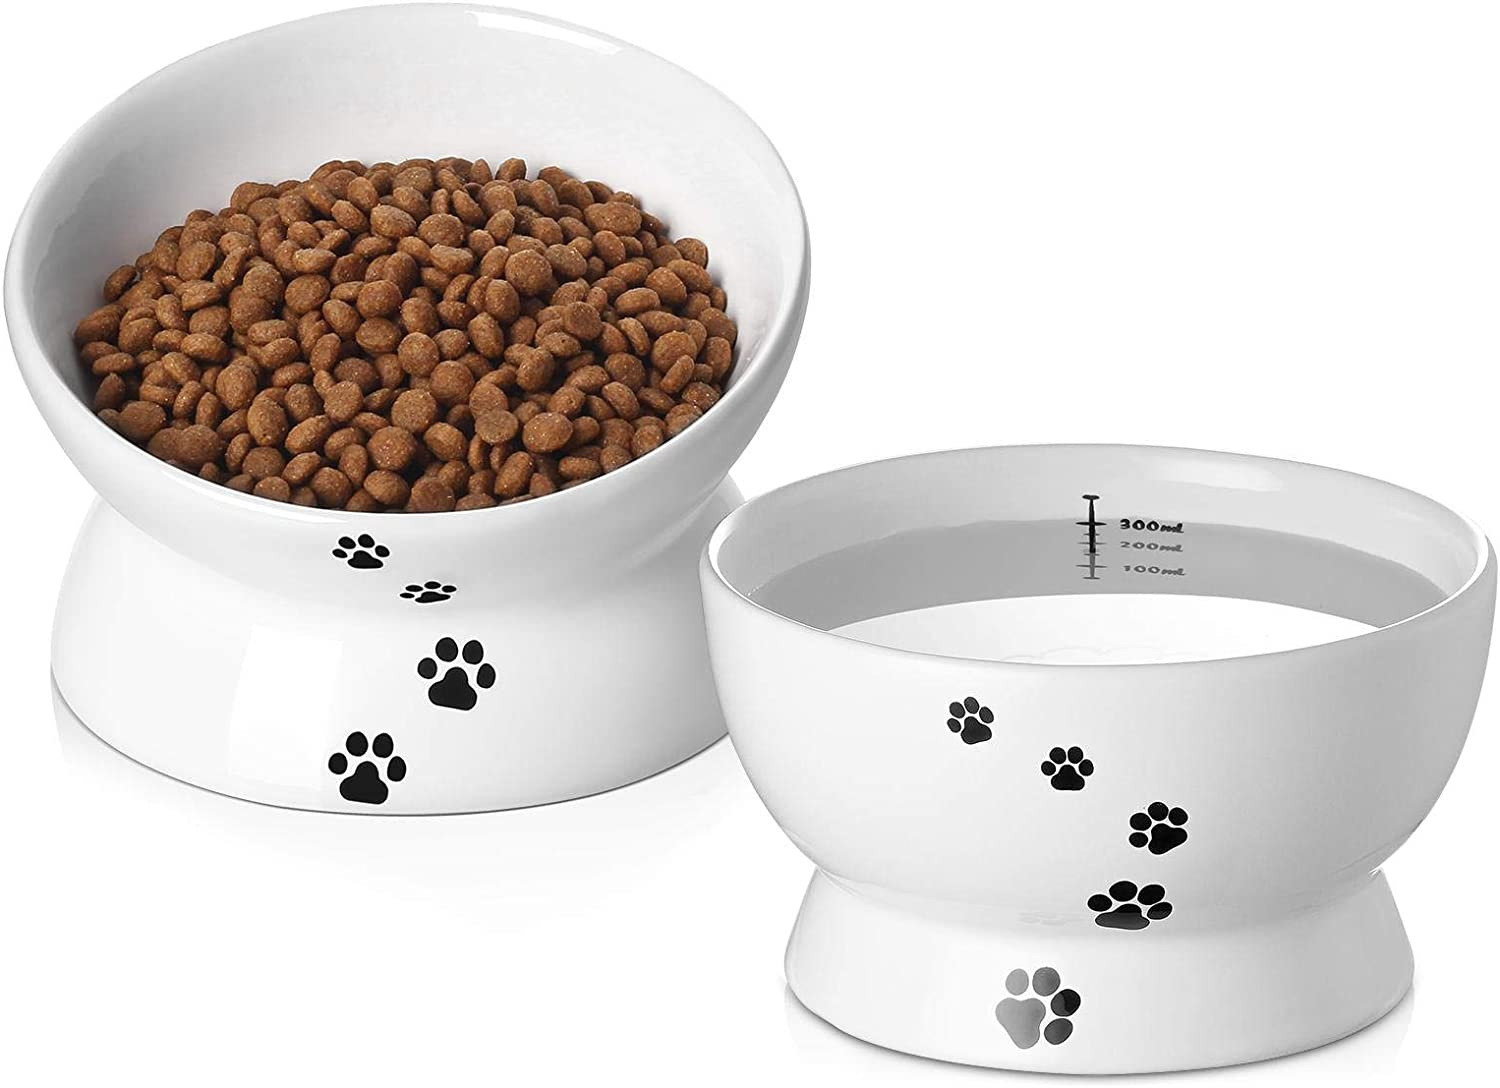 Y YHY Raised Cat Food and Water Bowl Set, Tilted Elevated Cat Food Bowls No Spill, Ceramic Cat Food Feeder Bowl Collection, Pet Bowl for Flat-Faced Cats and Small Dogs, Set of 2, White